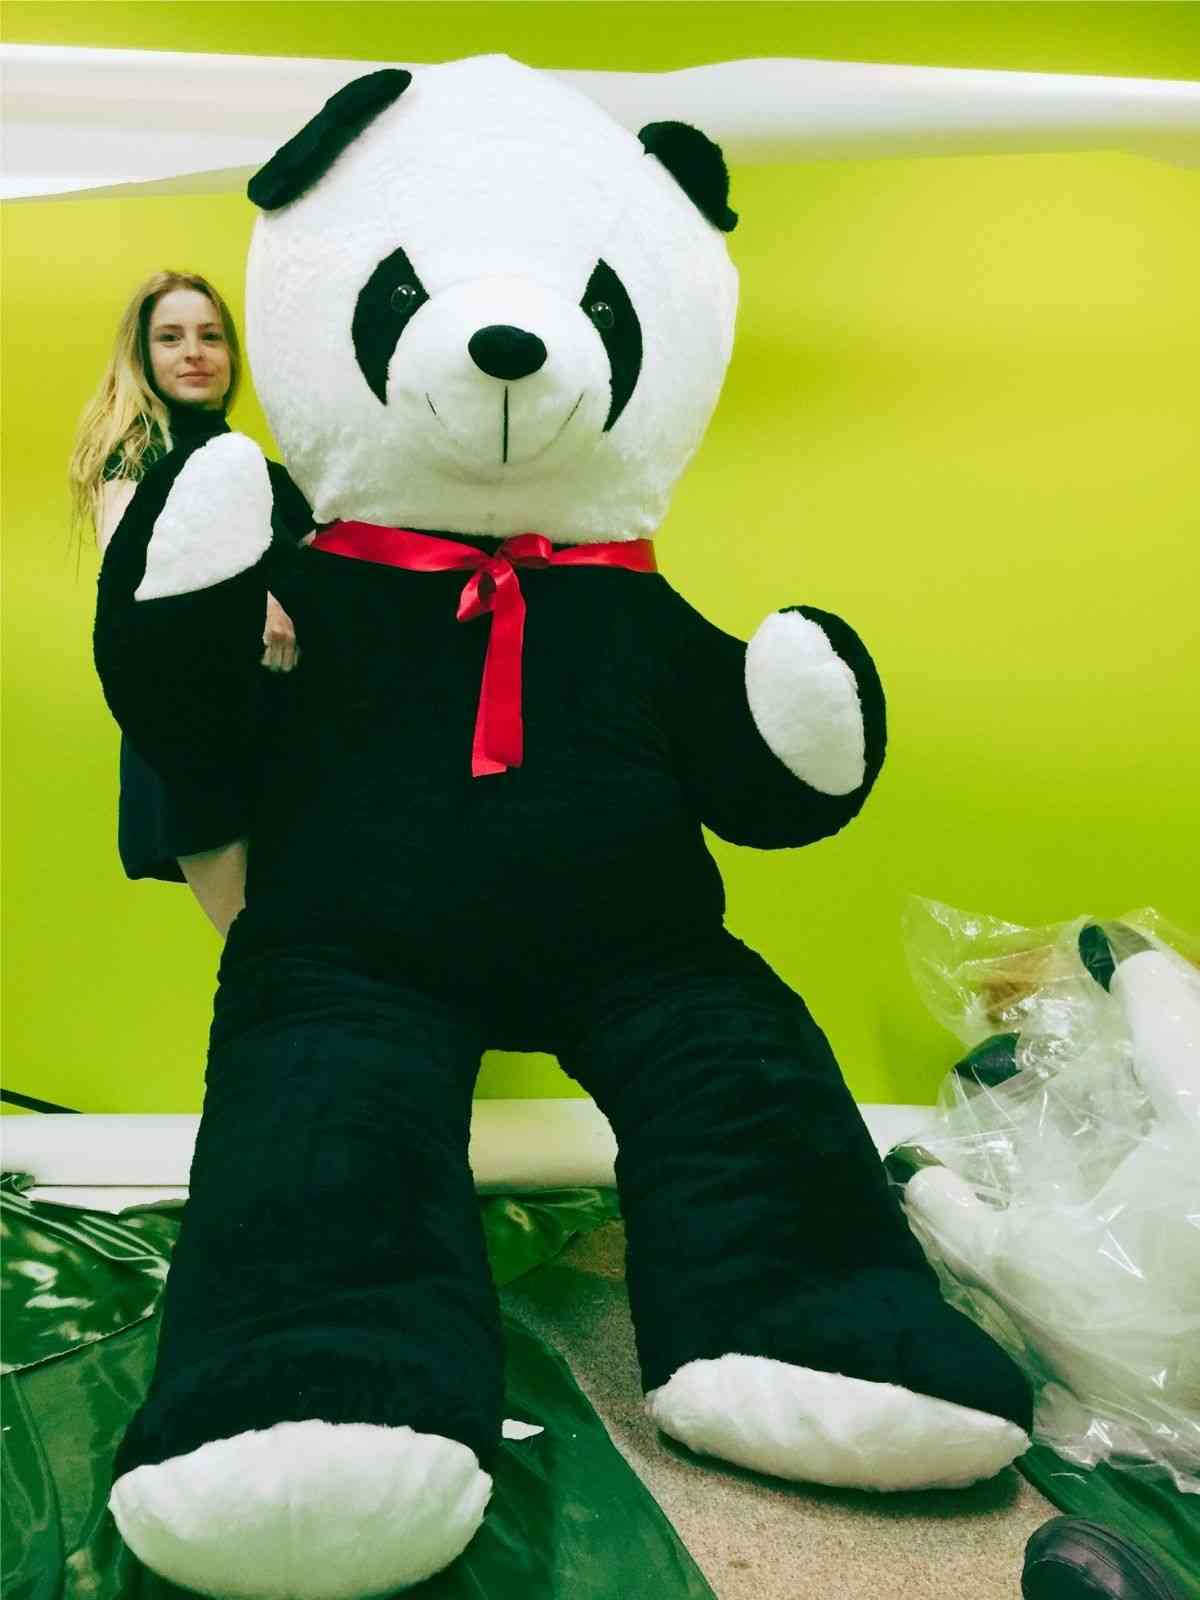 Shop the INSANELY BIG STUFFED ANIMALS Category to get this 8 feet tall giant stuffed panda that's made in the USA